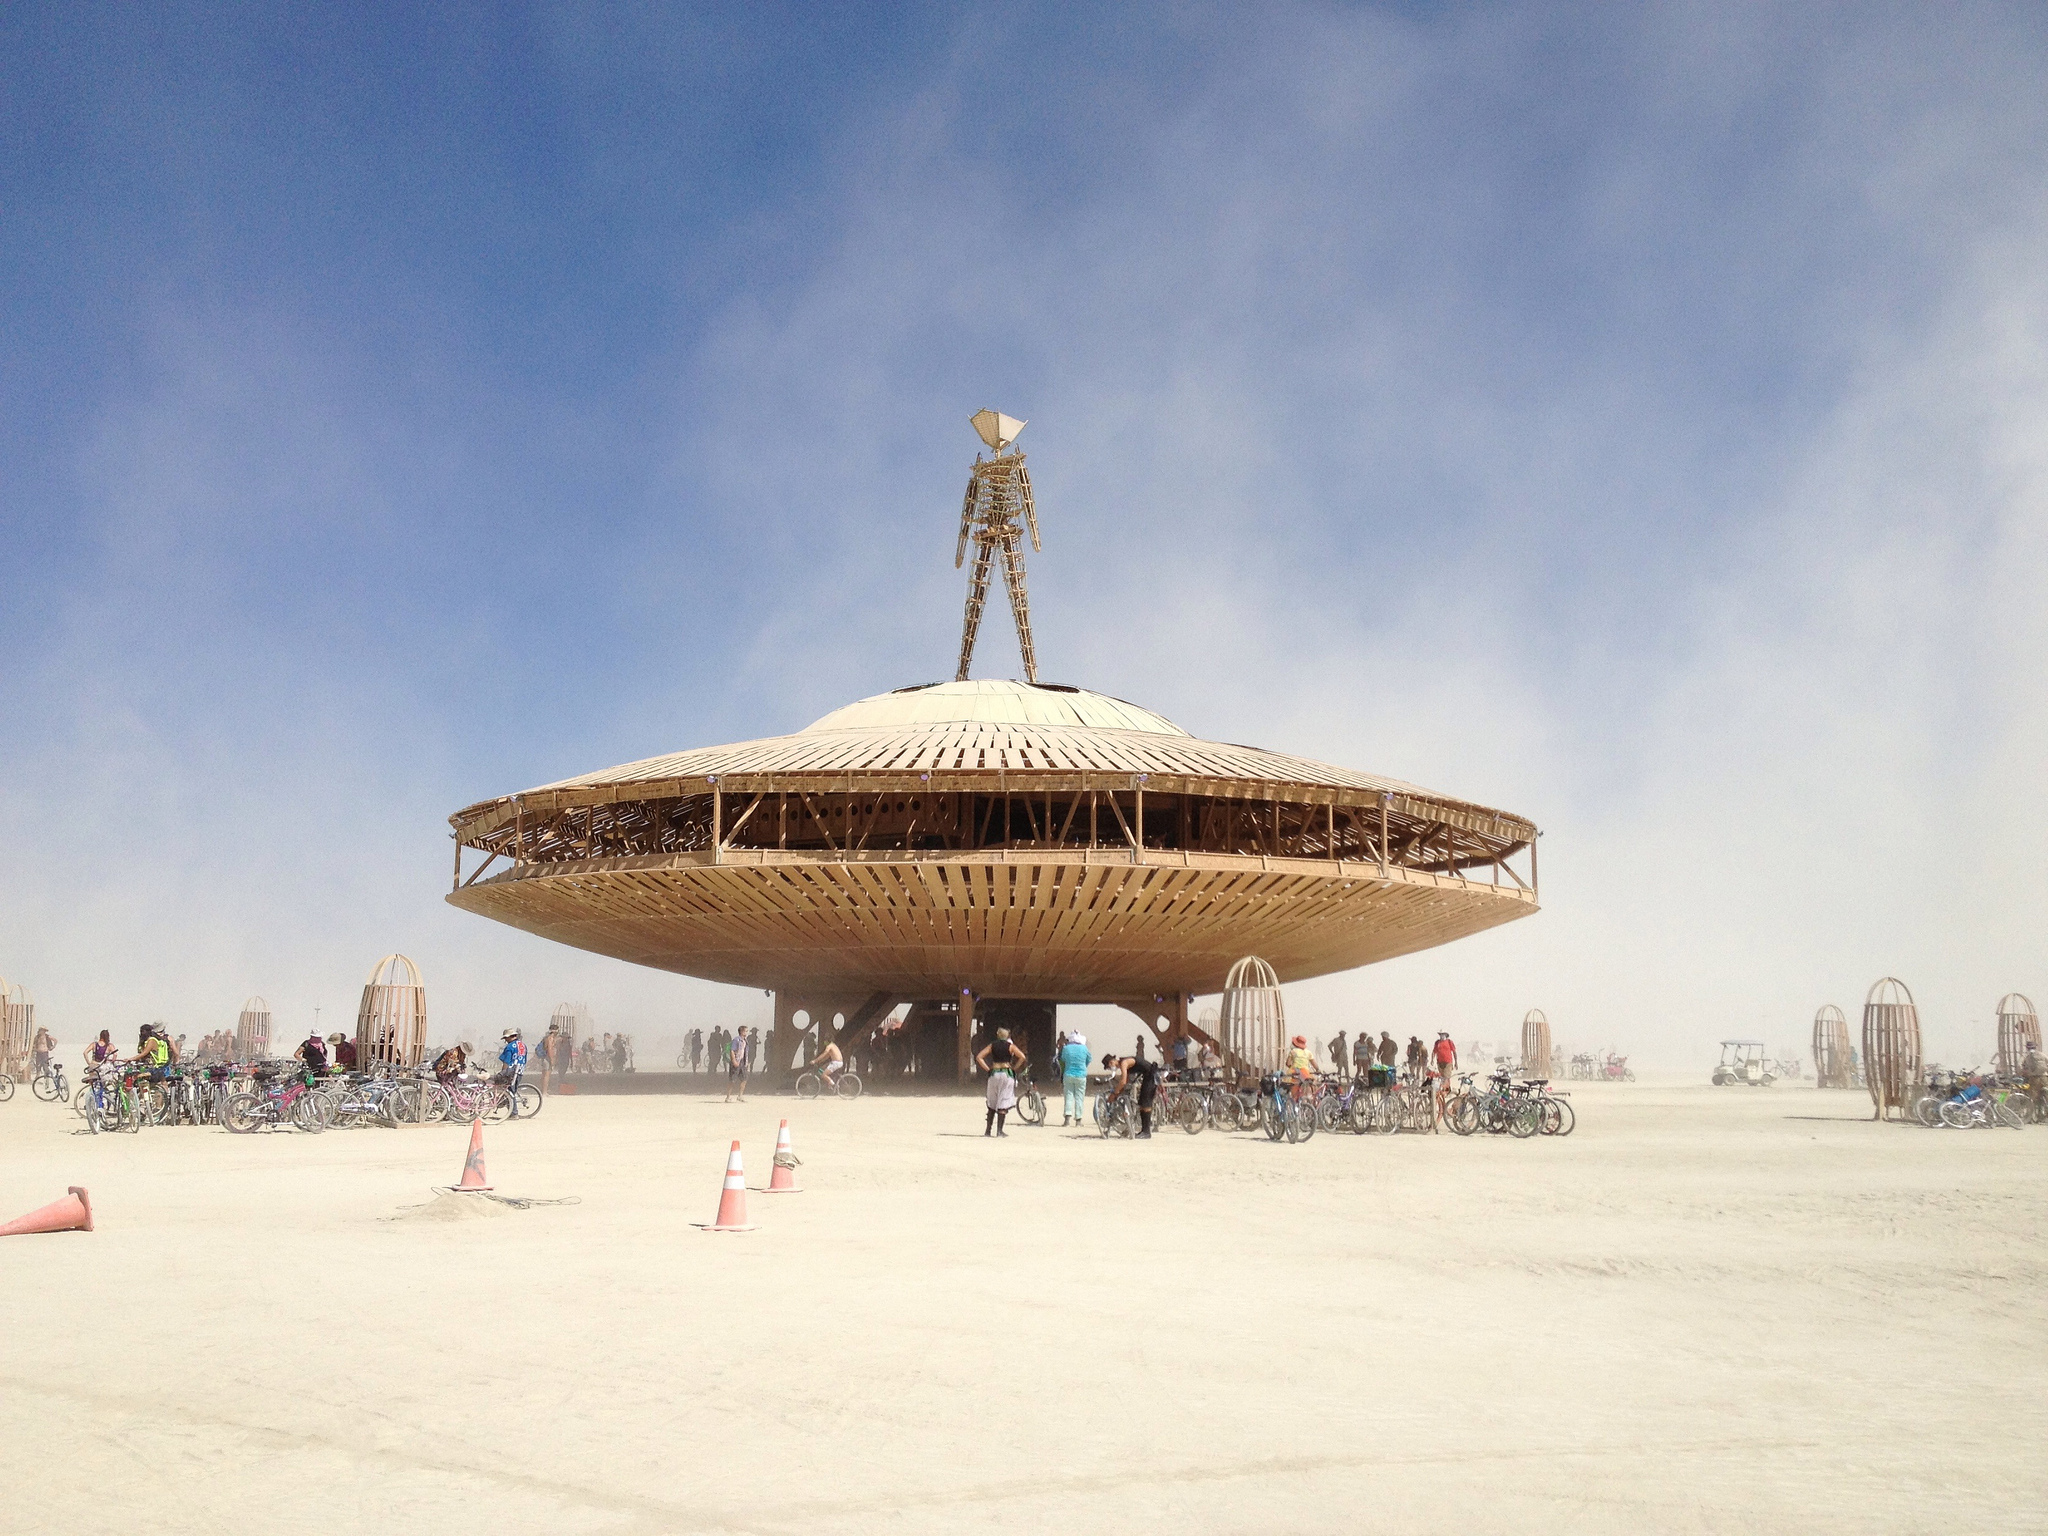 Burning Man 2017: Best pop-up art and architecture